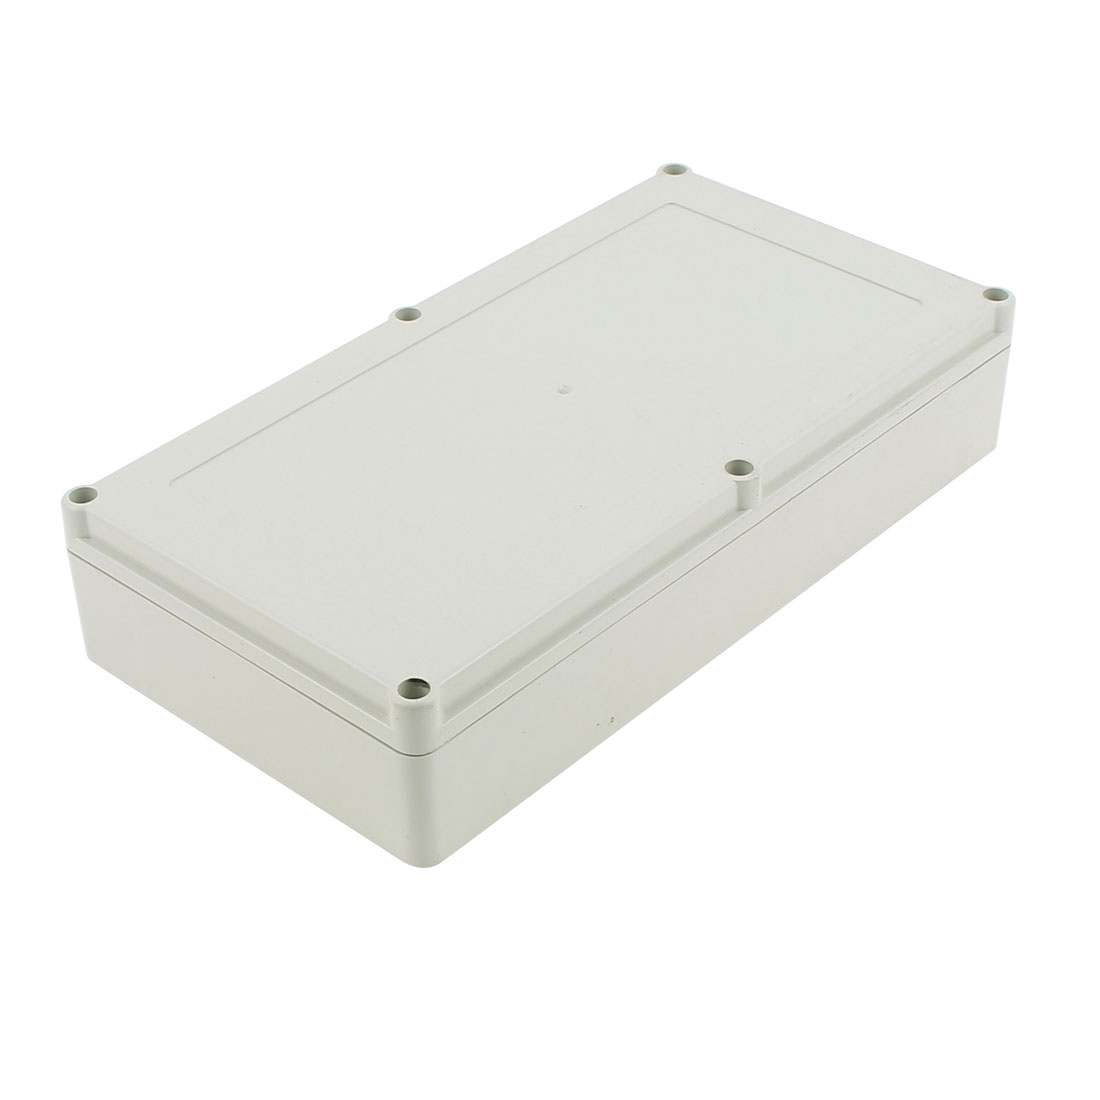 265 x 140 x 55mm Dustproof IP65 Junction Box Terminal Connecting Box Enclosure